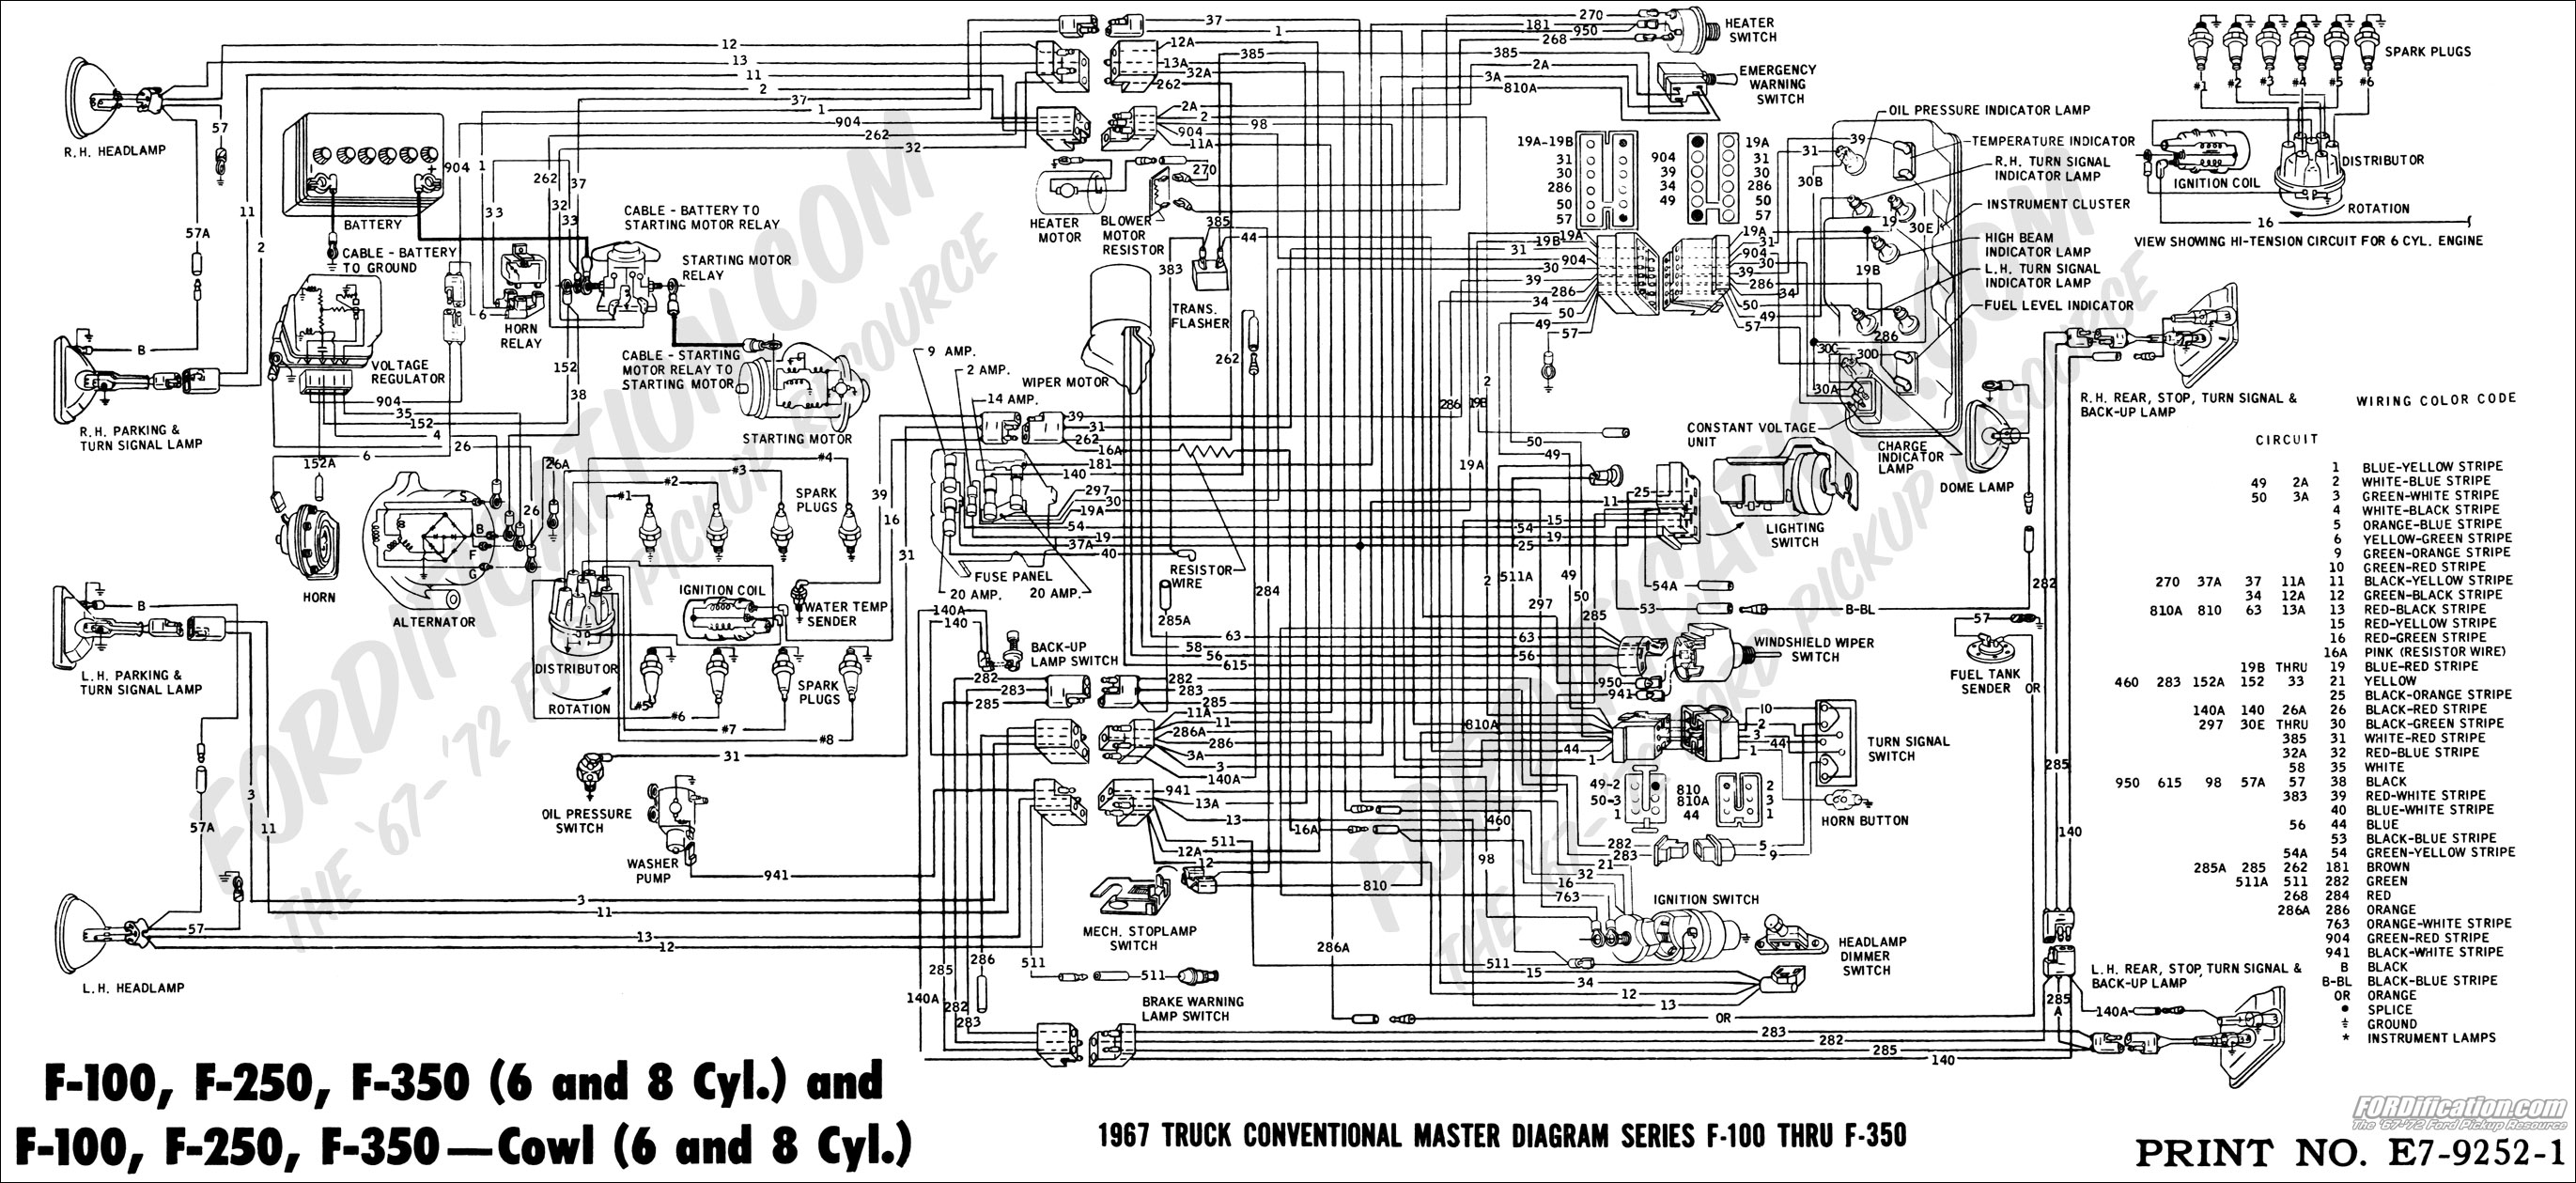 67masterdiagram 99 f150 wiring diagram 99 f150 stereo wiring diagram \u2022 wiring 1999 ford ranger xlt wiring diagrams at crackthecode.co